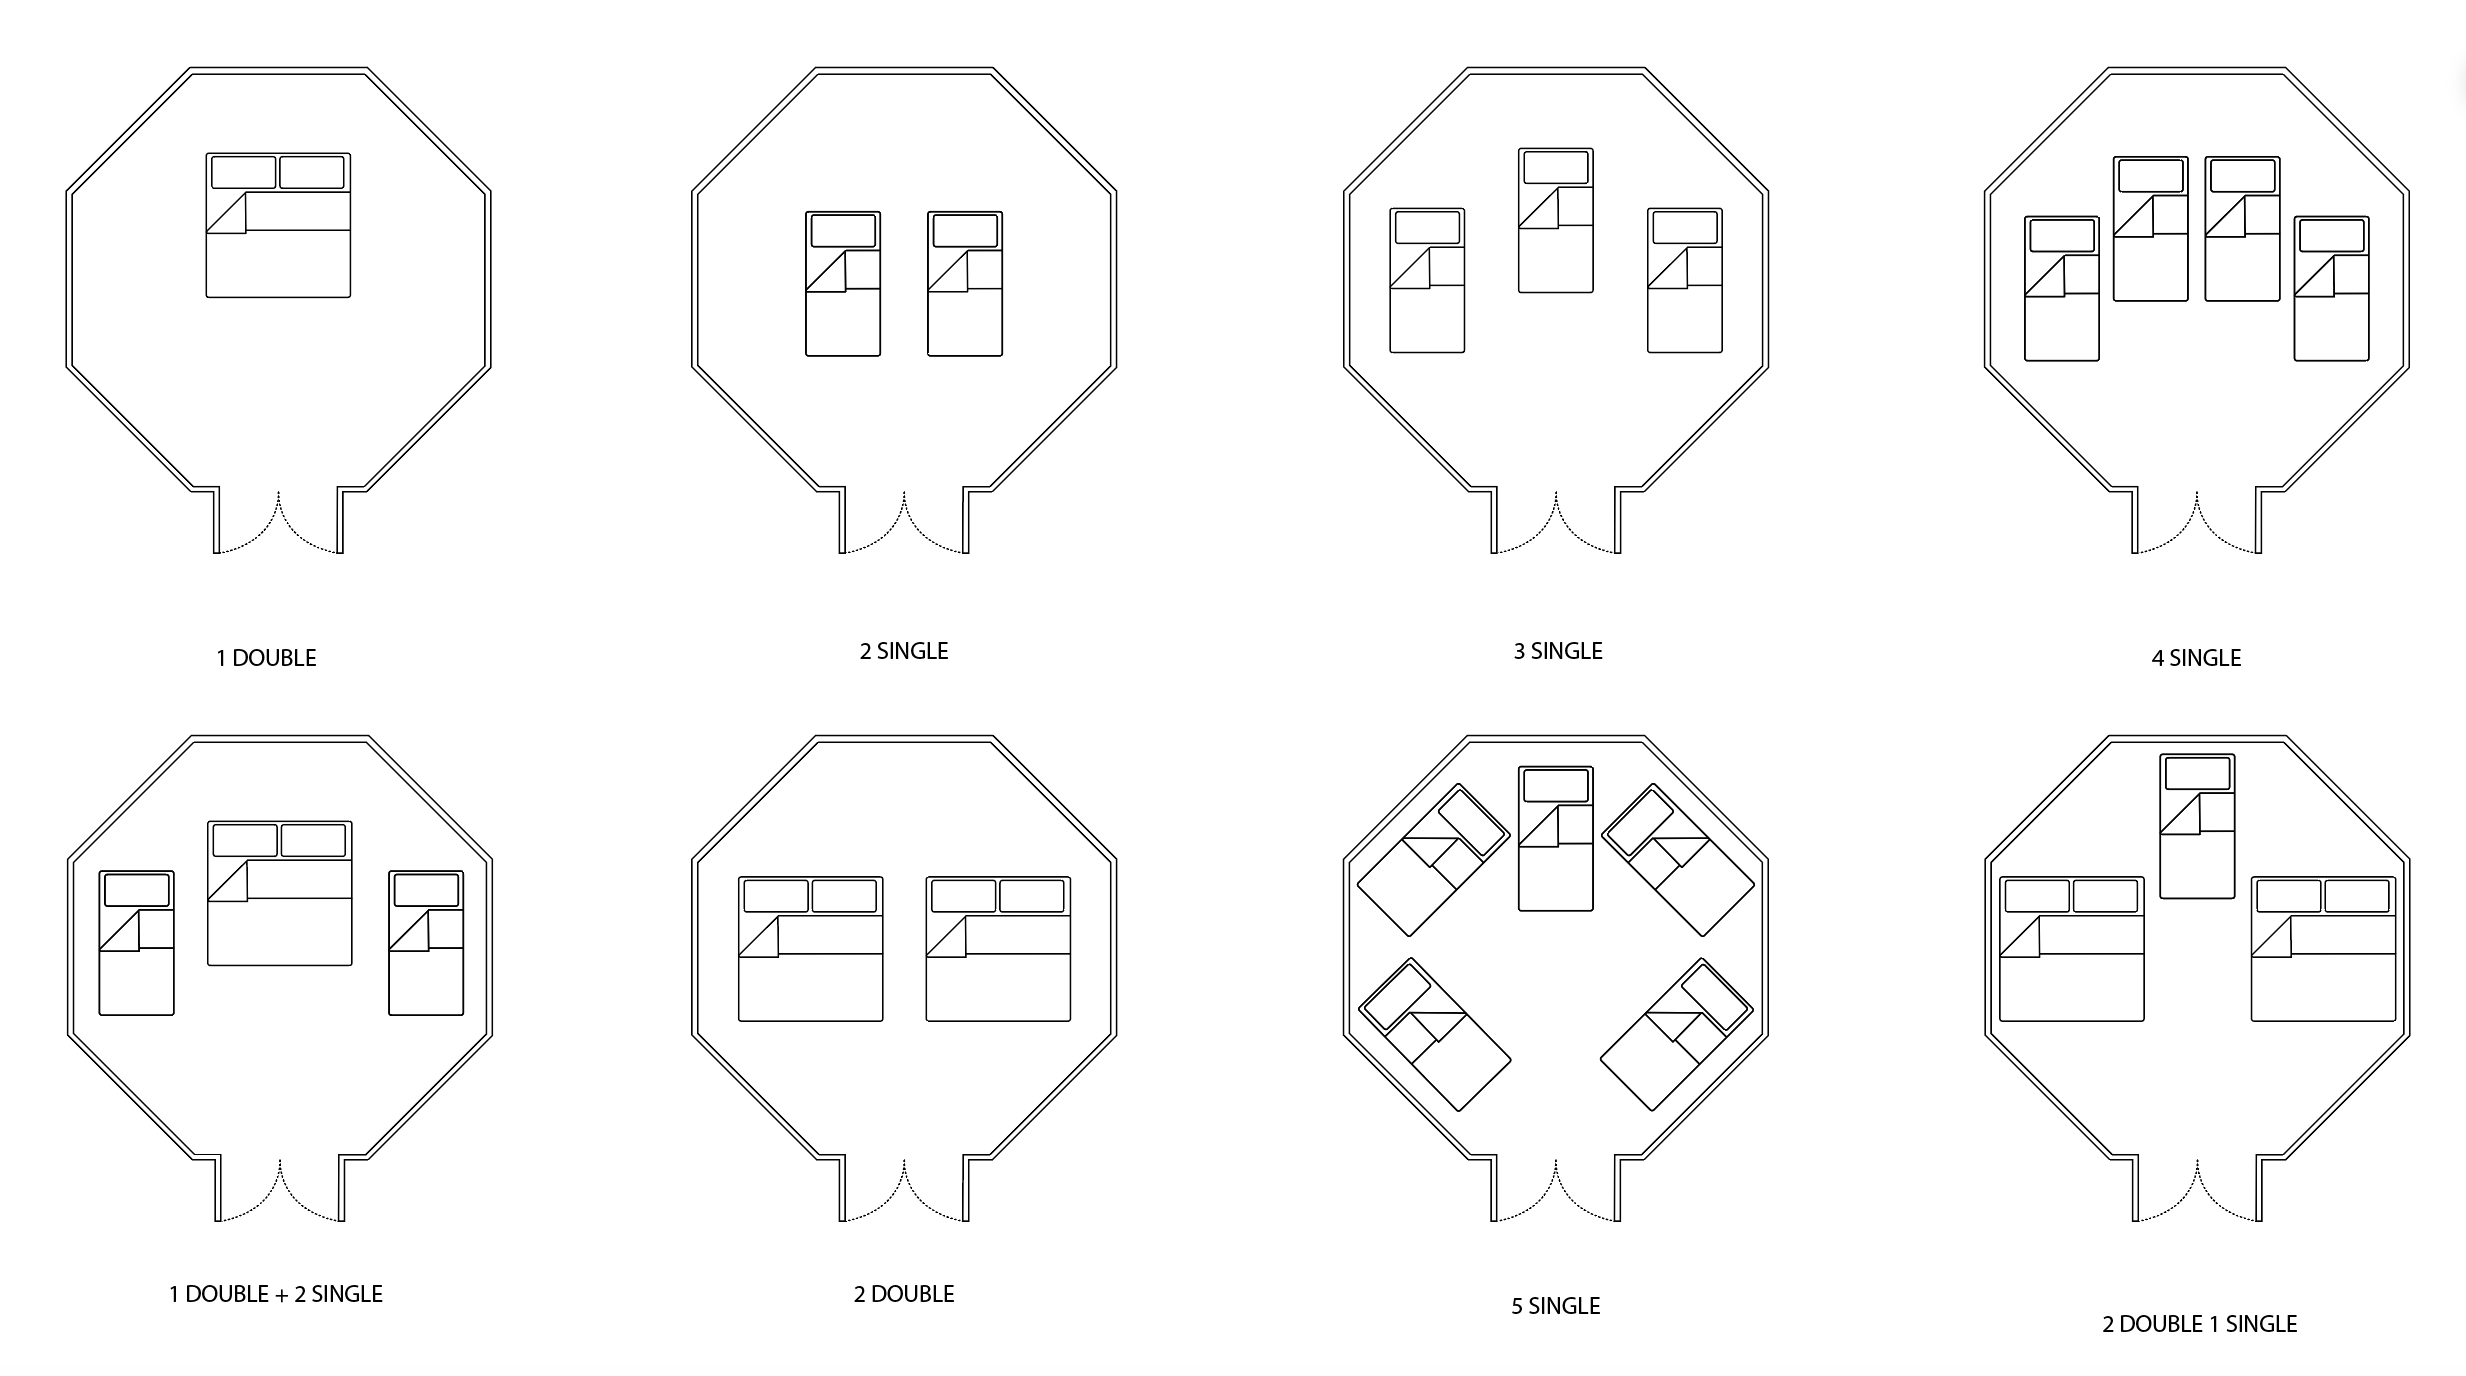 Bell Tent Layouts 2020.png